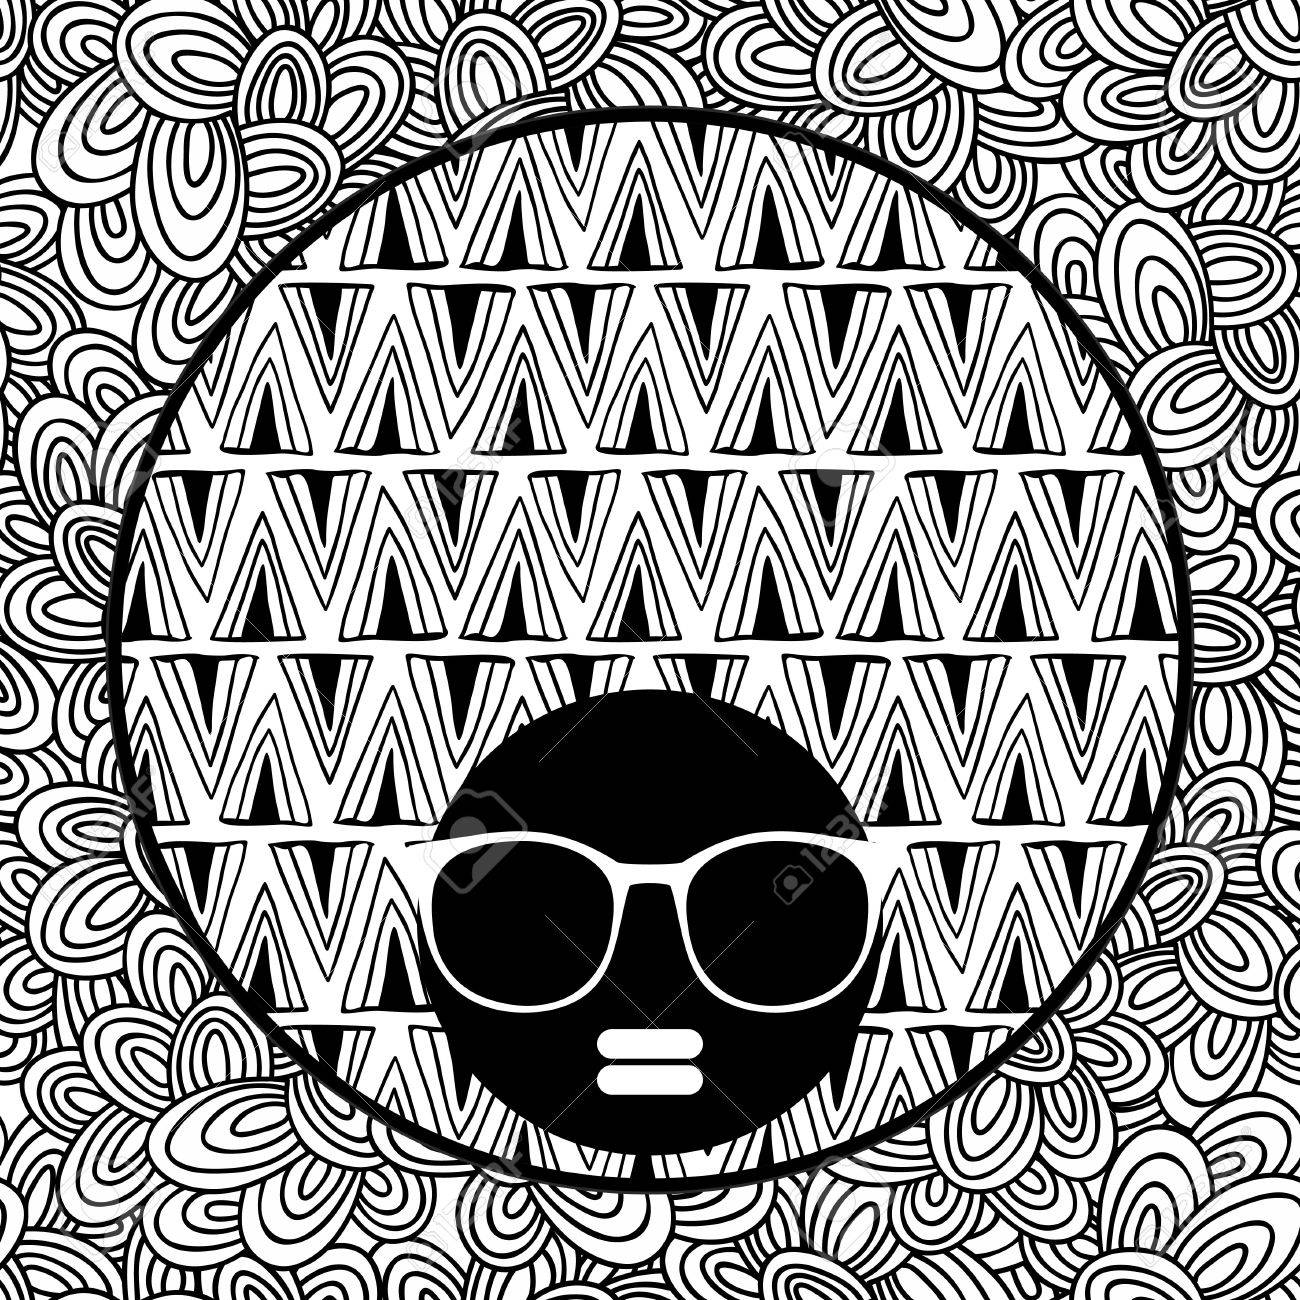 1300x1300 Doodle Pattern With Black Skin Woman In Sunglasses For Coloring